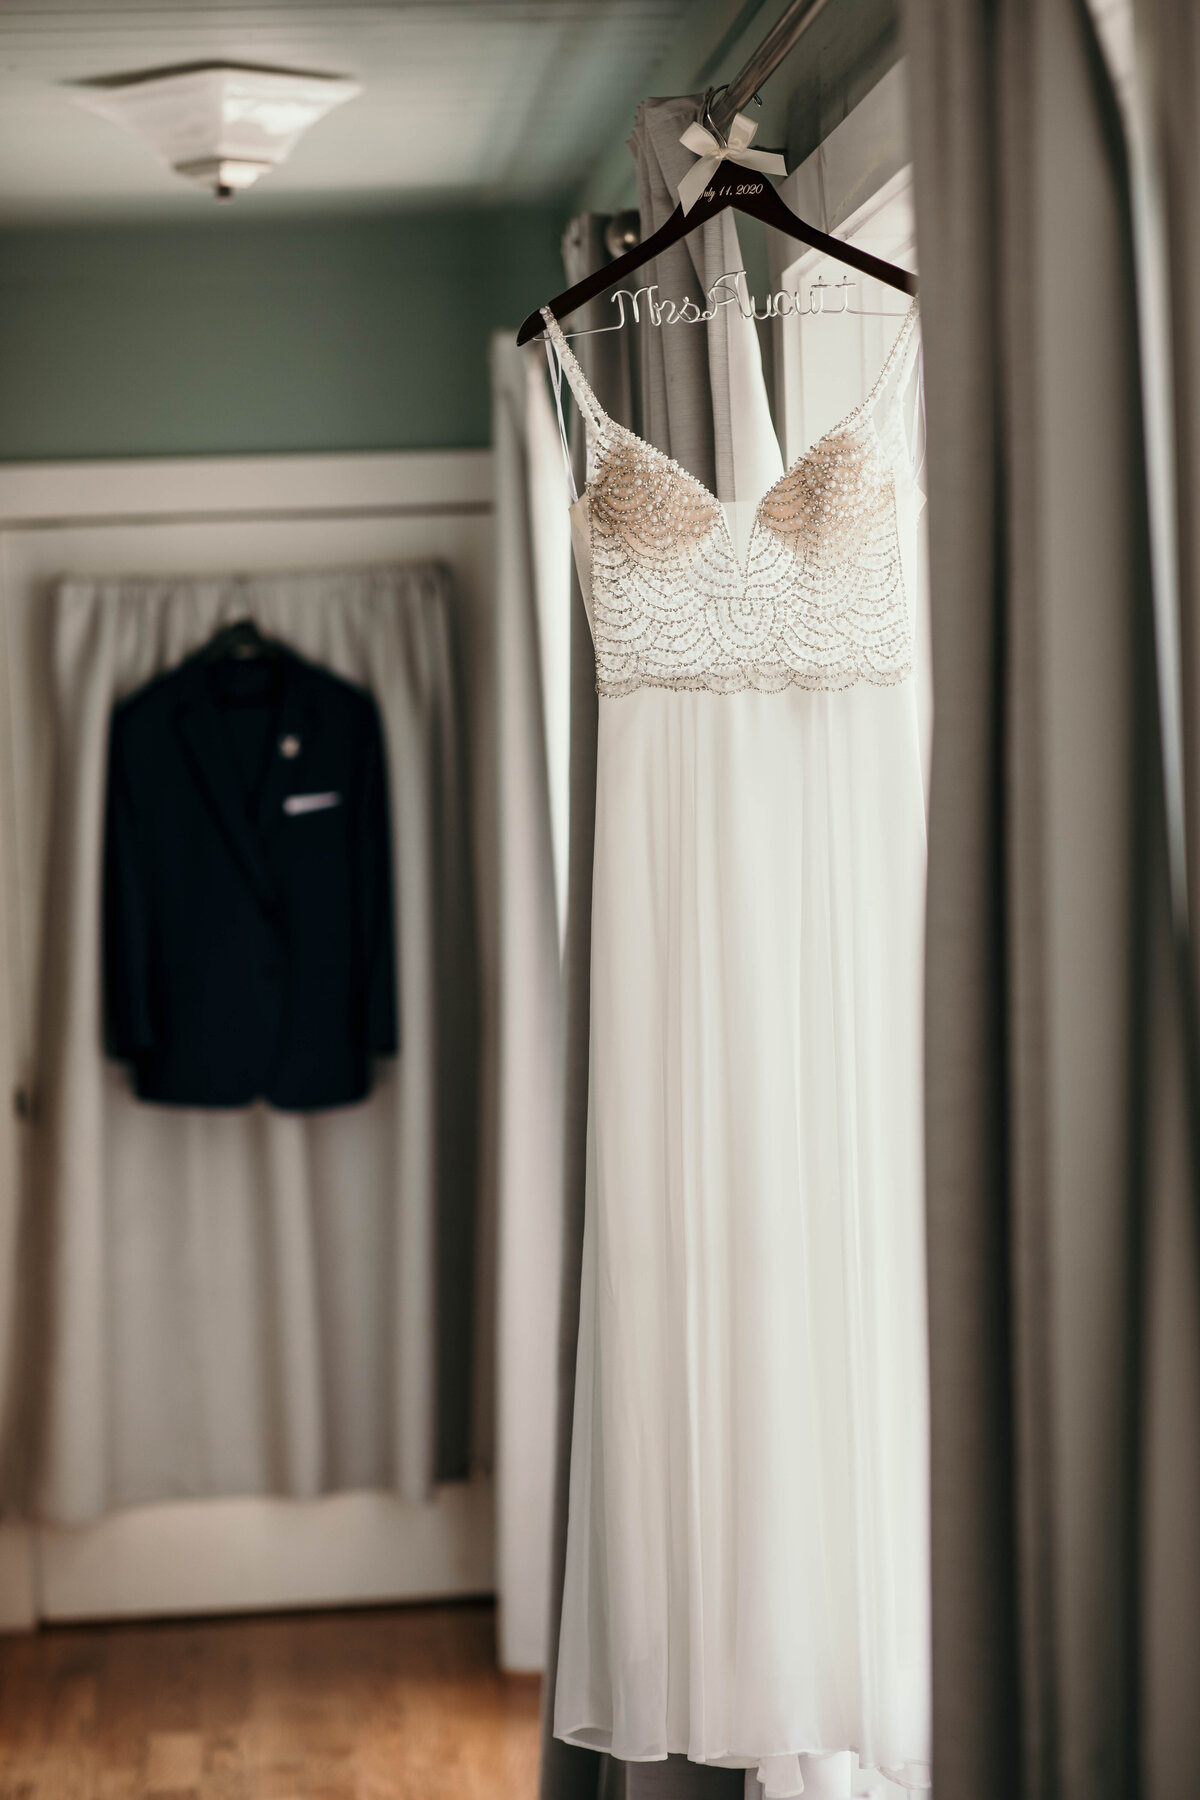 An image of the bride's beautiful wedding dress hanging on a wire name hanger at a window with the sun lighting up the beaded bodice and soft folds in the long dress by Garry & Stacy Photography Co - Bradenton Florida wedding photography